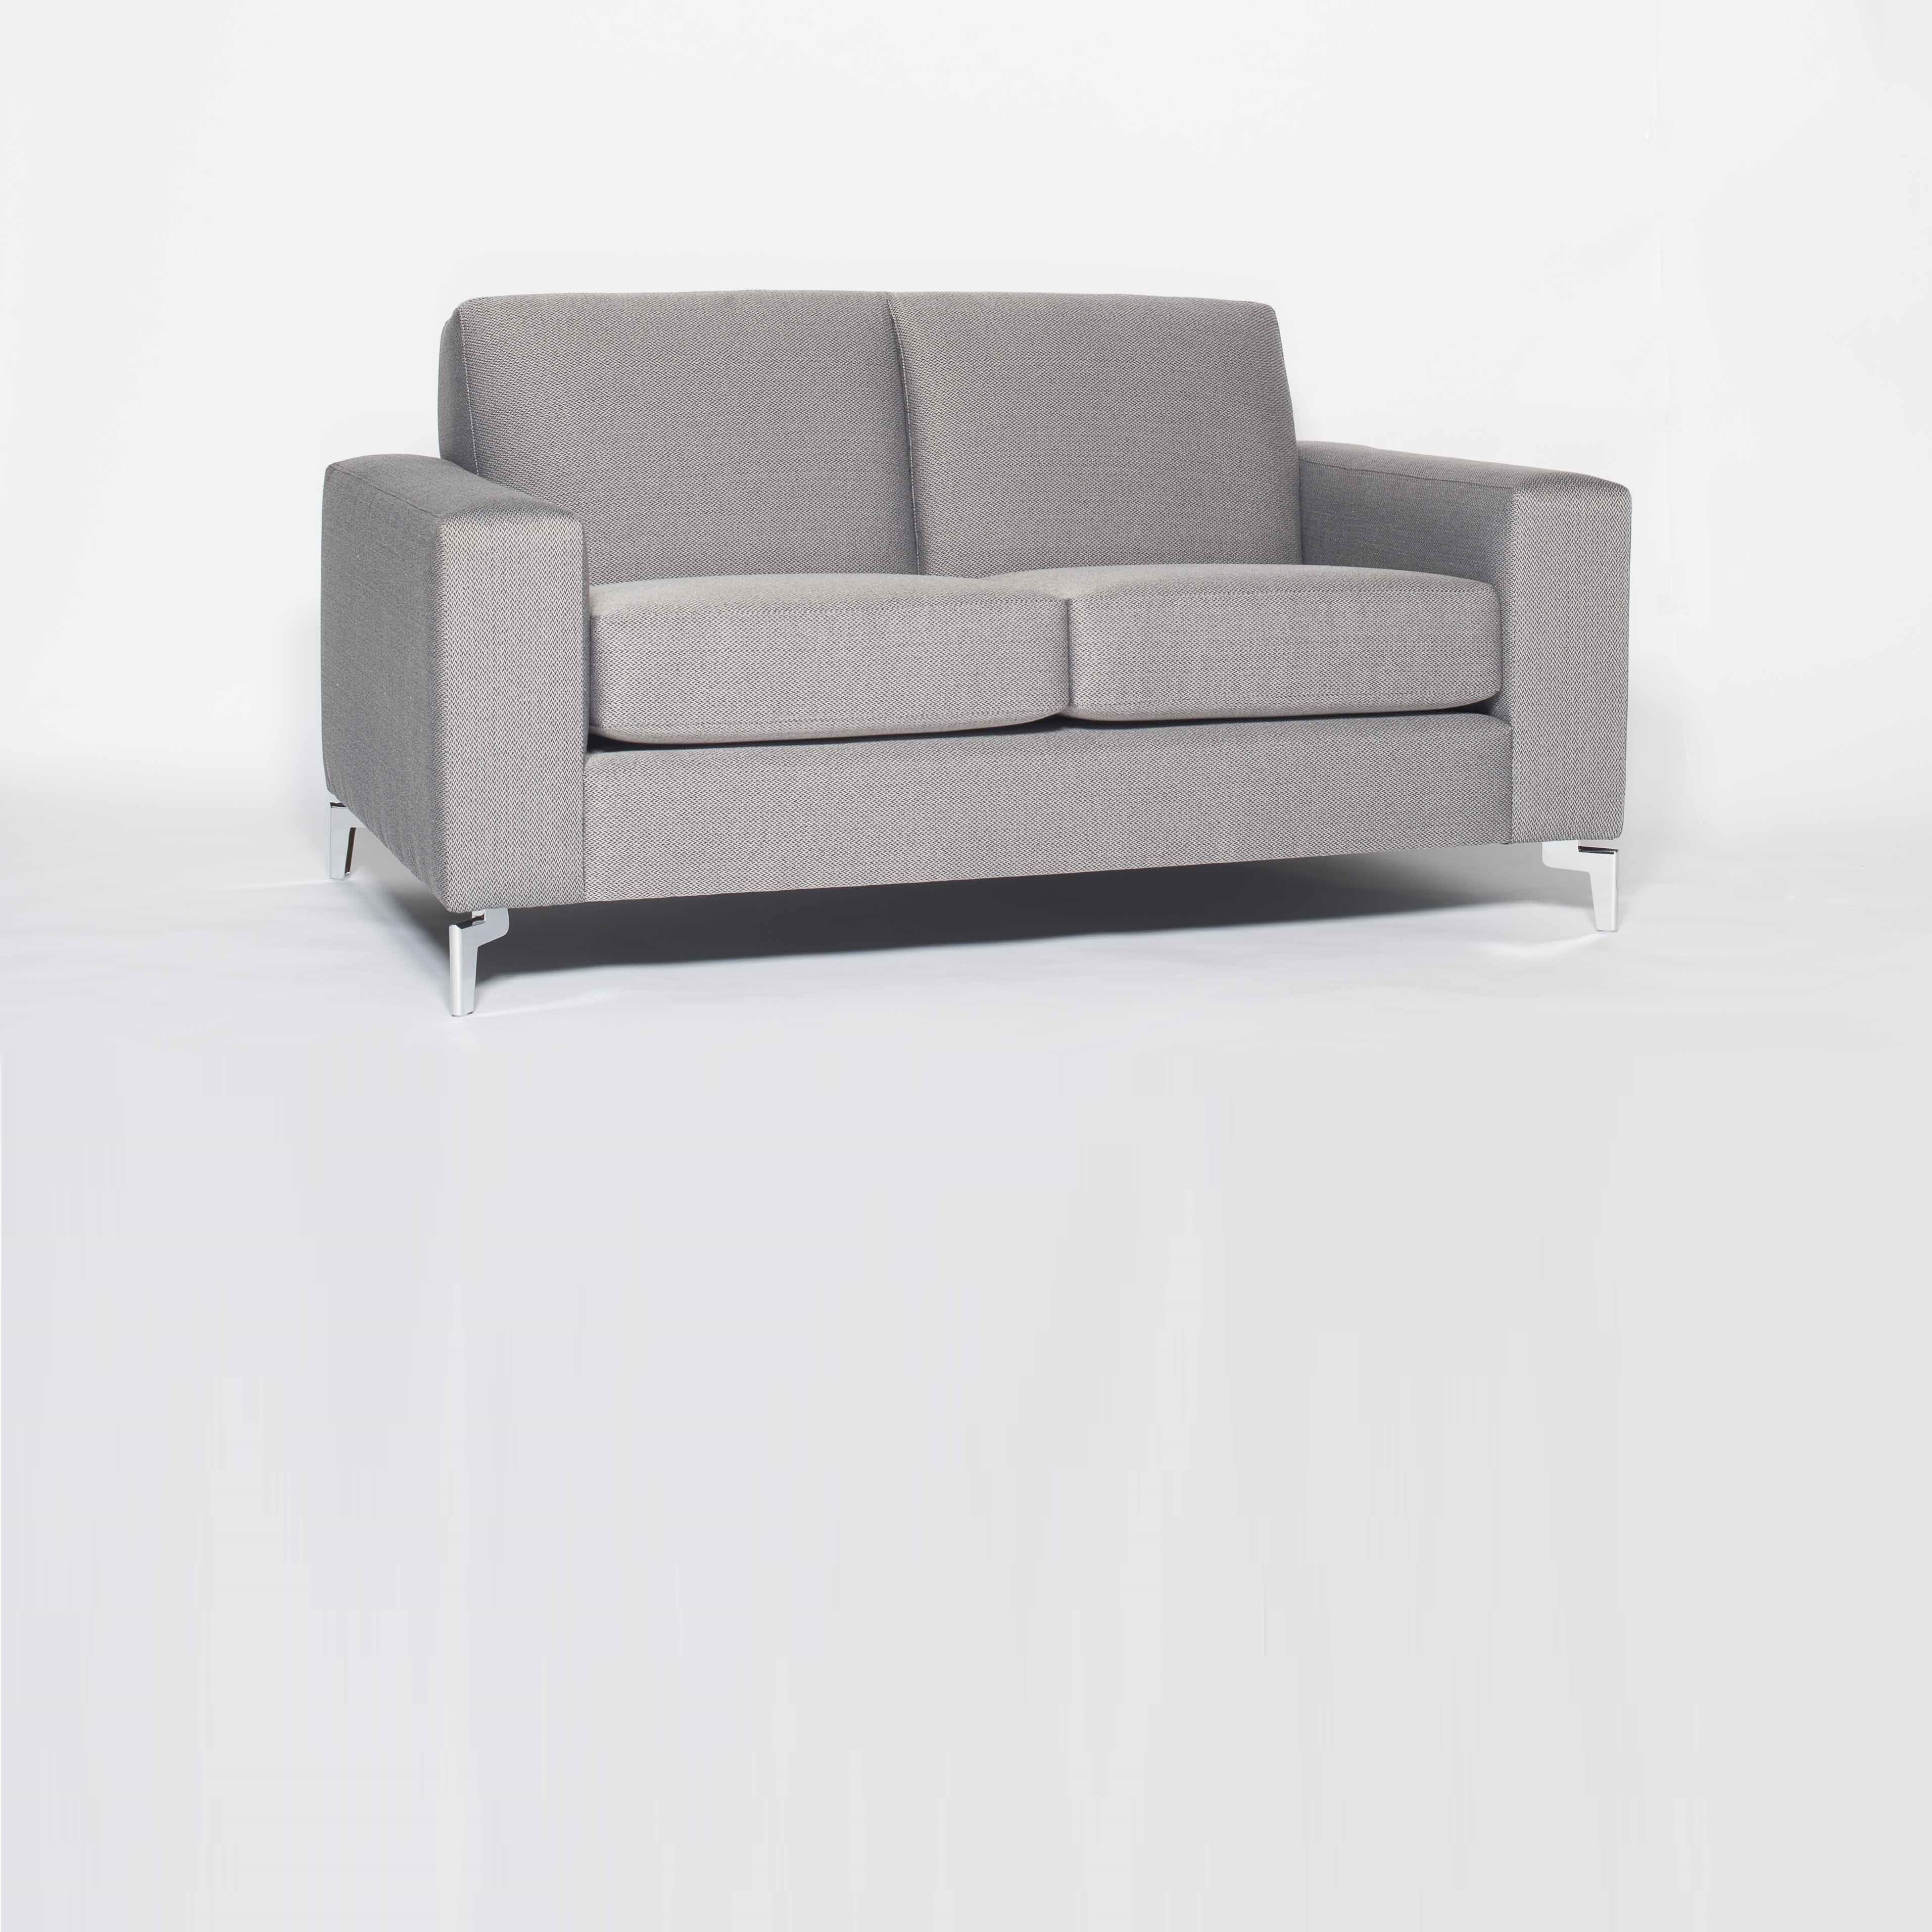 Sofa Cleaning Montreal Mercer Mikaza Meubles Modernes Montreal Modern Furniture